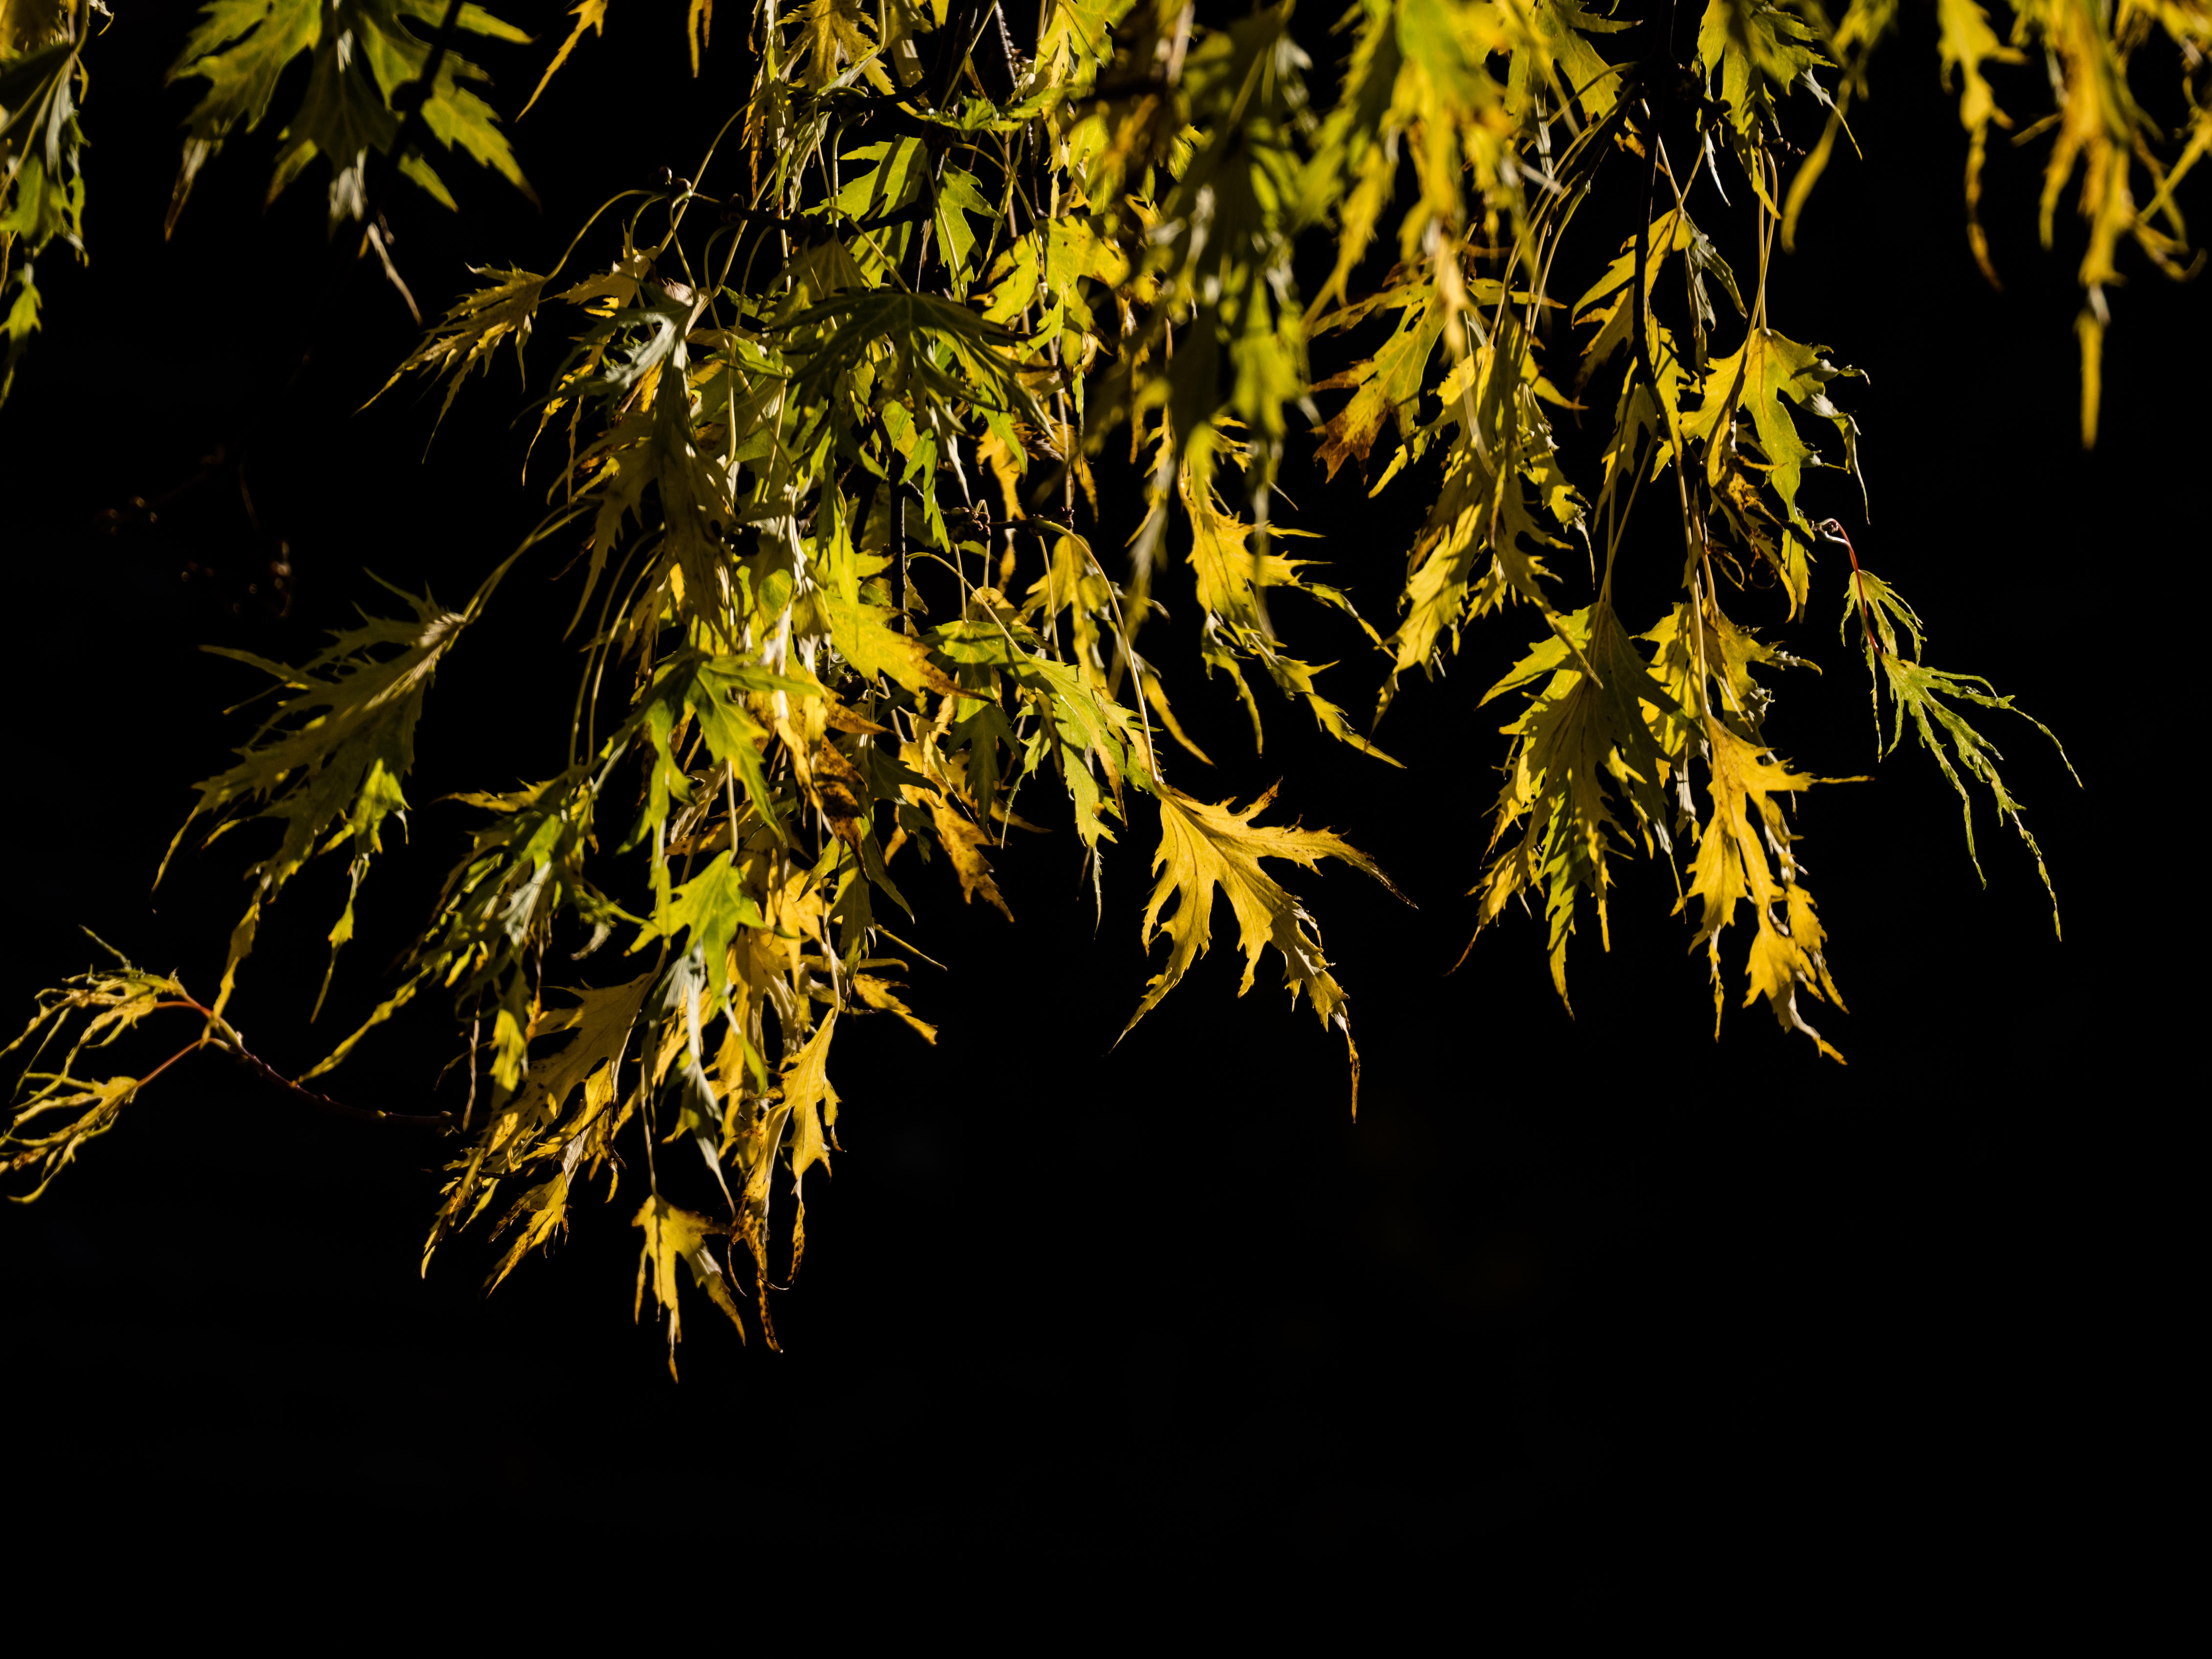 145661 download wallpaper Nature, Branches, Leaves, Black Background screensavers and pictures for free